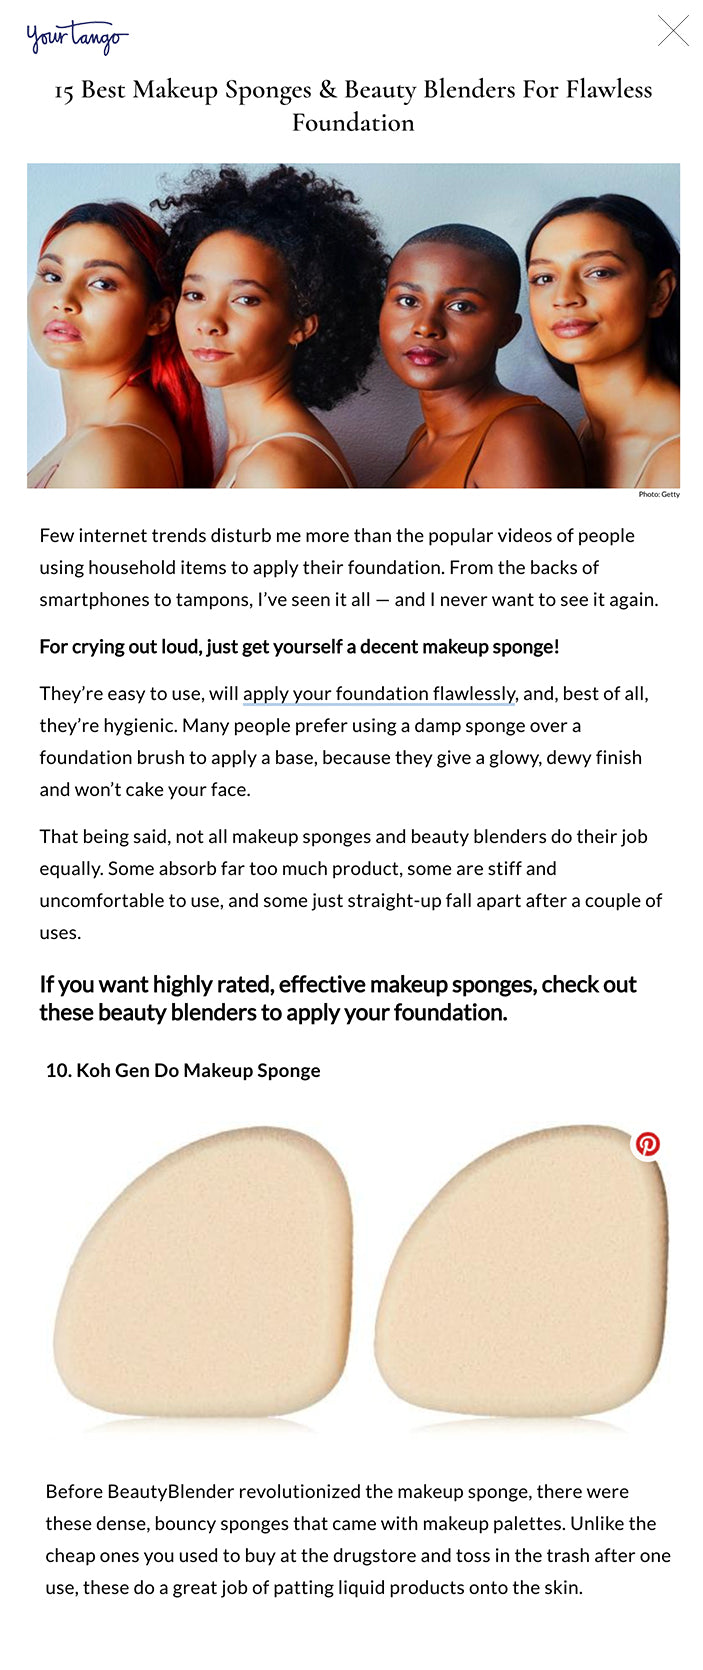 15 Best Makeup Sponges & Beauty Blenders For Flawless Foundation Photo: Getty15 Best Makeup Sponges & Beauty Blenders For Flawless Foundation Alice Kelly Writer Self Aug 3, 2020, 09:30 EDT  Few internet trends disturb me more than the popular videos of people using household items to apply their foundation. From the backs of smartphones to tampons, I've seen it all — and I never want to see it again.  For crying out loud, just get yourself a decent makeup sponge!  They're easy to use, will apply your foundation flawlessly, and, best of all, they're hygienic. Many people prefer using a damp sponge over a foundation brush to apply a base, because they give a glowy, dewy finish and won't cake your face.   That being said, not all makeup sponges and beauty blenders do their job equally. Some absorb far too much product, some are stiff and uncomfortable to use, and some just straight-up fall apart after a couple of uses.   If you want highly rated, effective makeup sponges, check out these beauty blenders to apply your foundation. RELATED: 15 Best Skincare Fridges For Preserving Your Beauty Products  1. The Original BeautyBlender  best makeup sponges  This sponge is the mother of all makeup sponges and single-handedly has every makeup brand striving to replicate its design. It's wide base and pointed tip is perfect for covering large cheek areas and tighter corners, like under eyes.   (Sephora, $20)  2. e.l.f. Total Face Sponge  best makeup sponges  For applying powder, you need a sponge that will evenly distribute the product on your face. This flat-edged sponge won't cake your powder or leave you with uneven makeup.  (Target, $5)  3. Hourglass Ambient Strobe Light Sculptor  best makeup sponges  Highlighter-obsessed makeup lovers need these sponge that's specifically designed to get the most out of your shimmery powders. It's dense in texture so you won't waste powder, and its unique shape fits perfectly along the high point of your face for easy application.   (Sephora